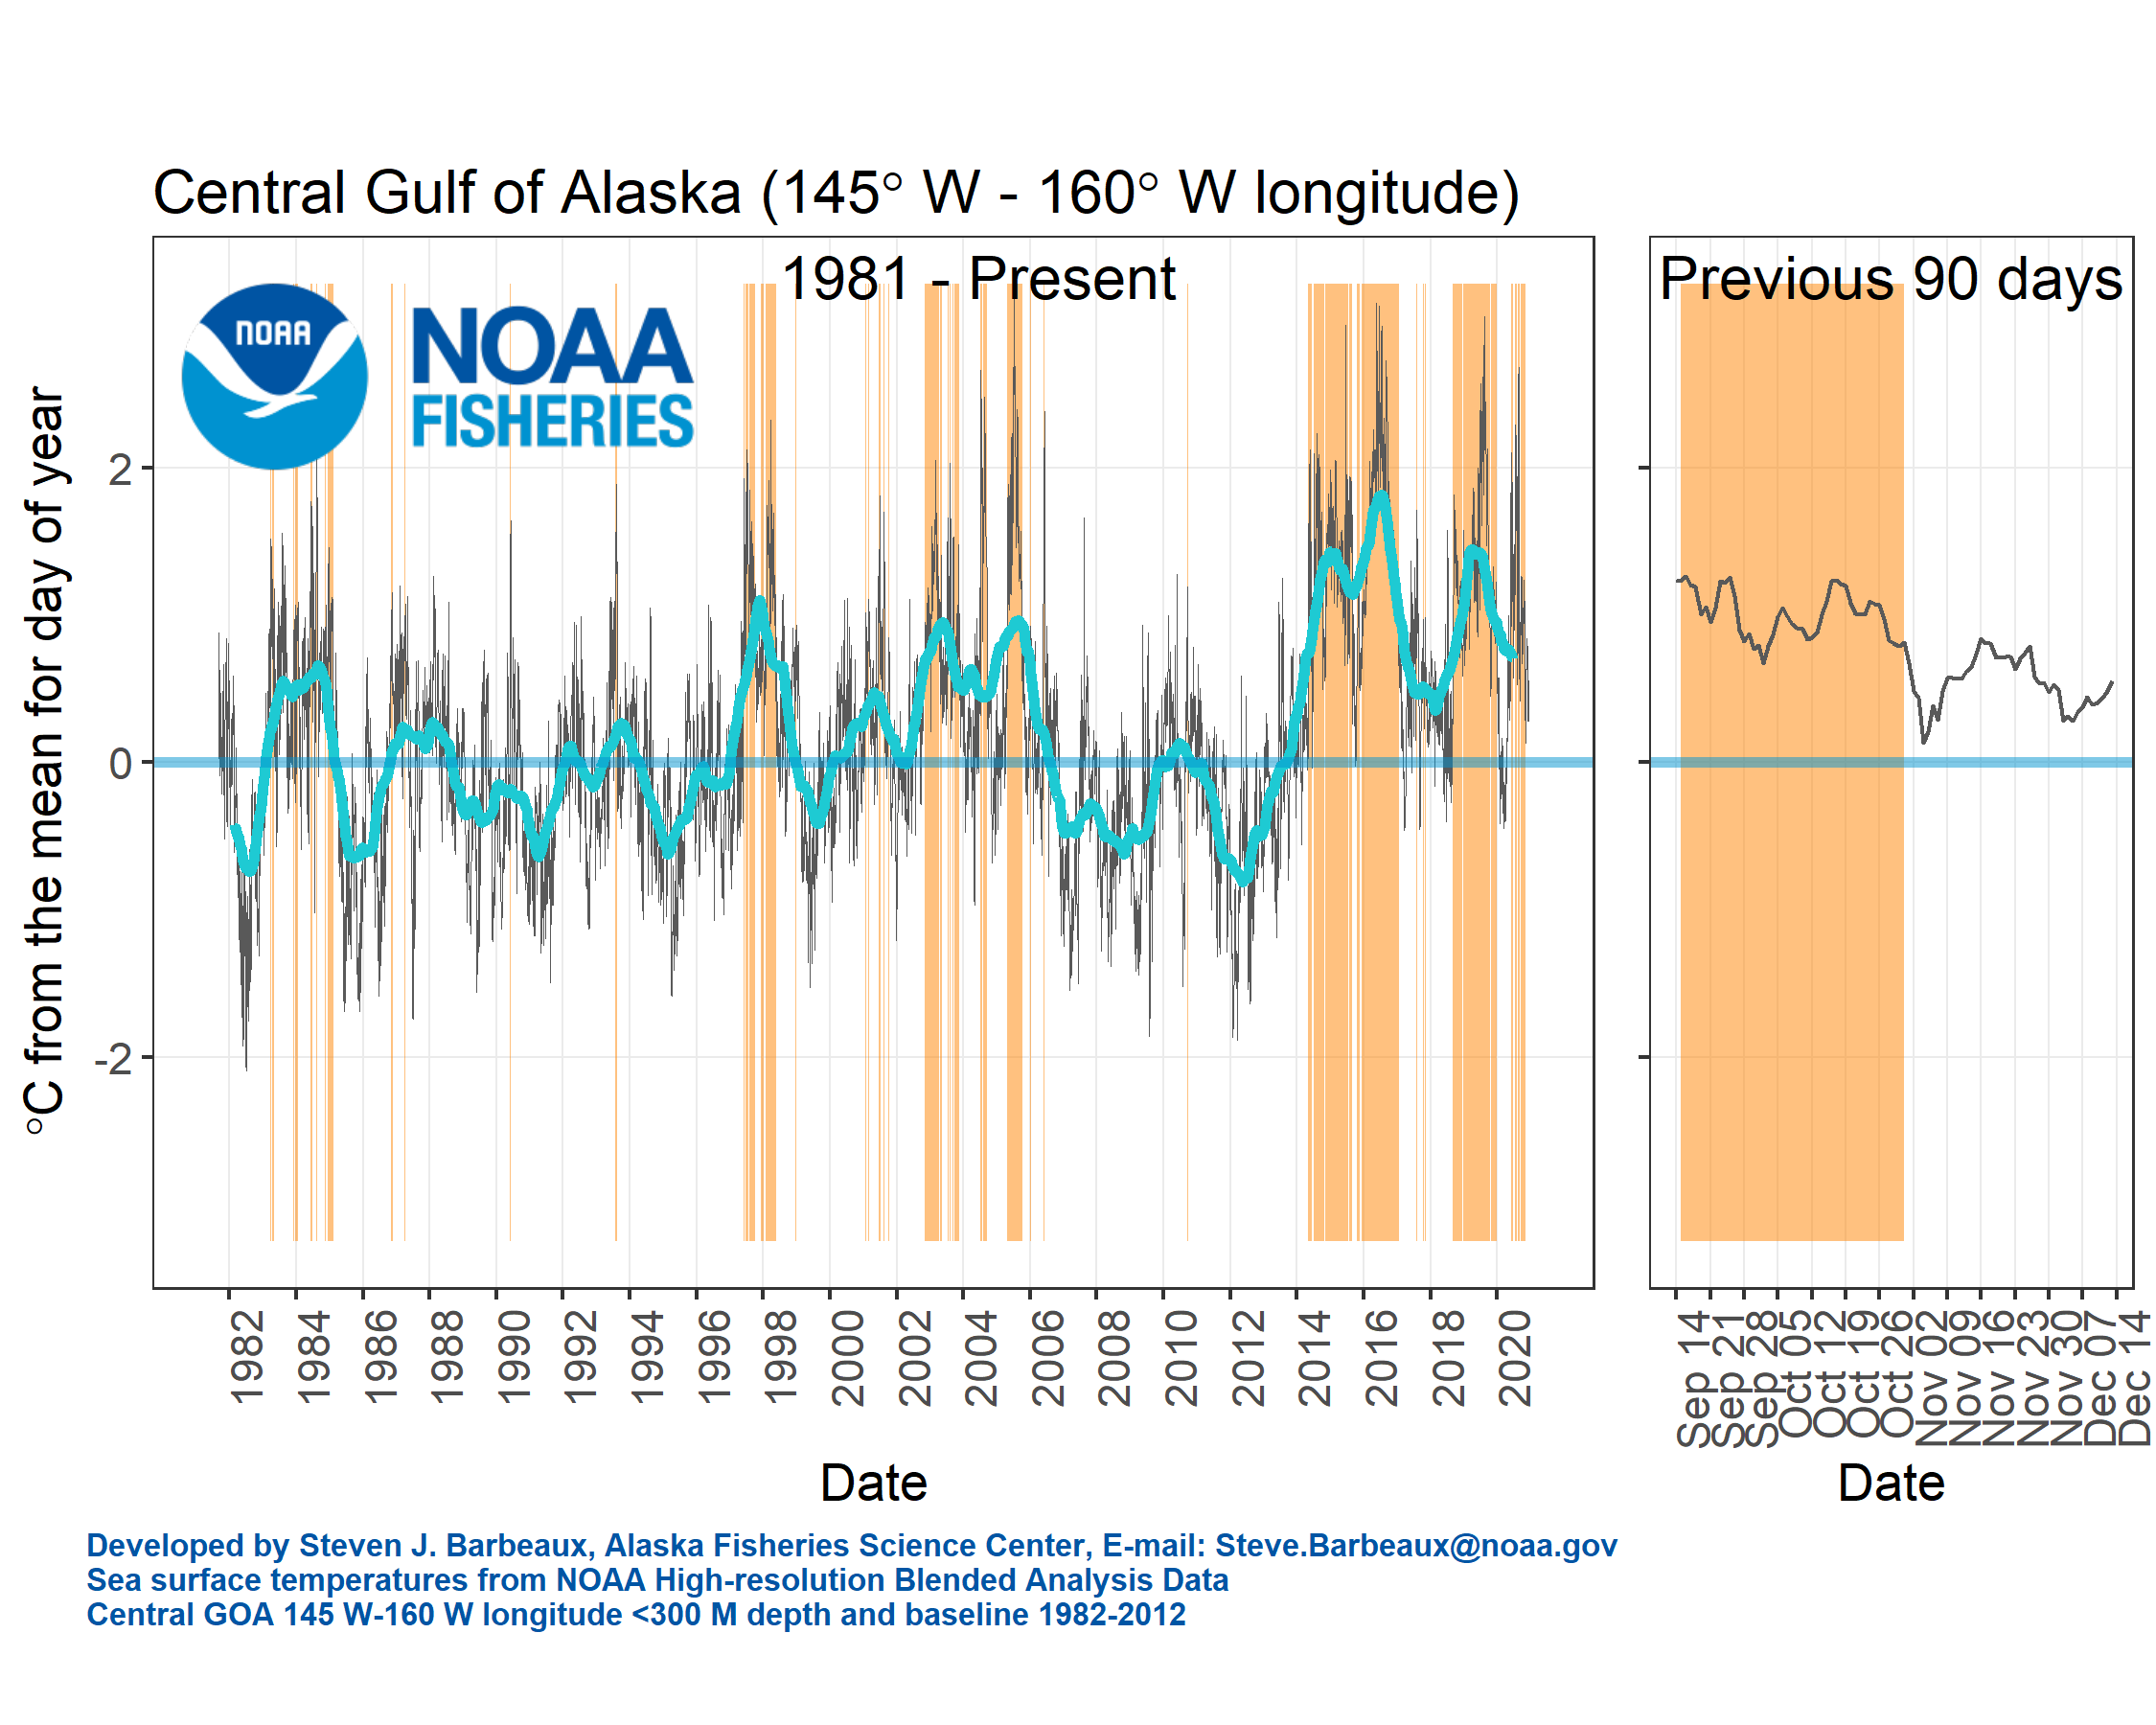 Gulf of Alaska Sea Surface Temperatures for 1981-Present